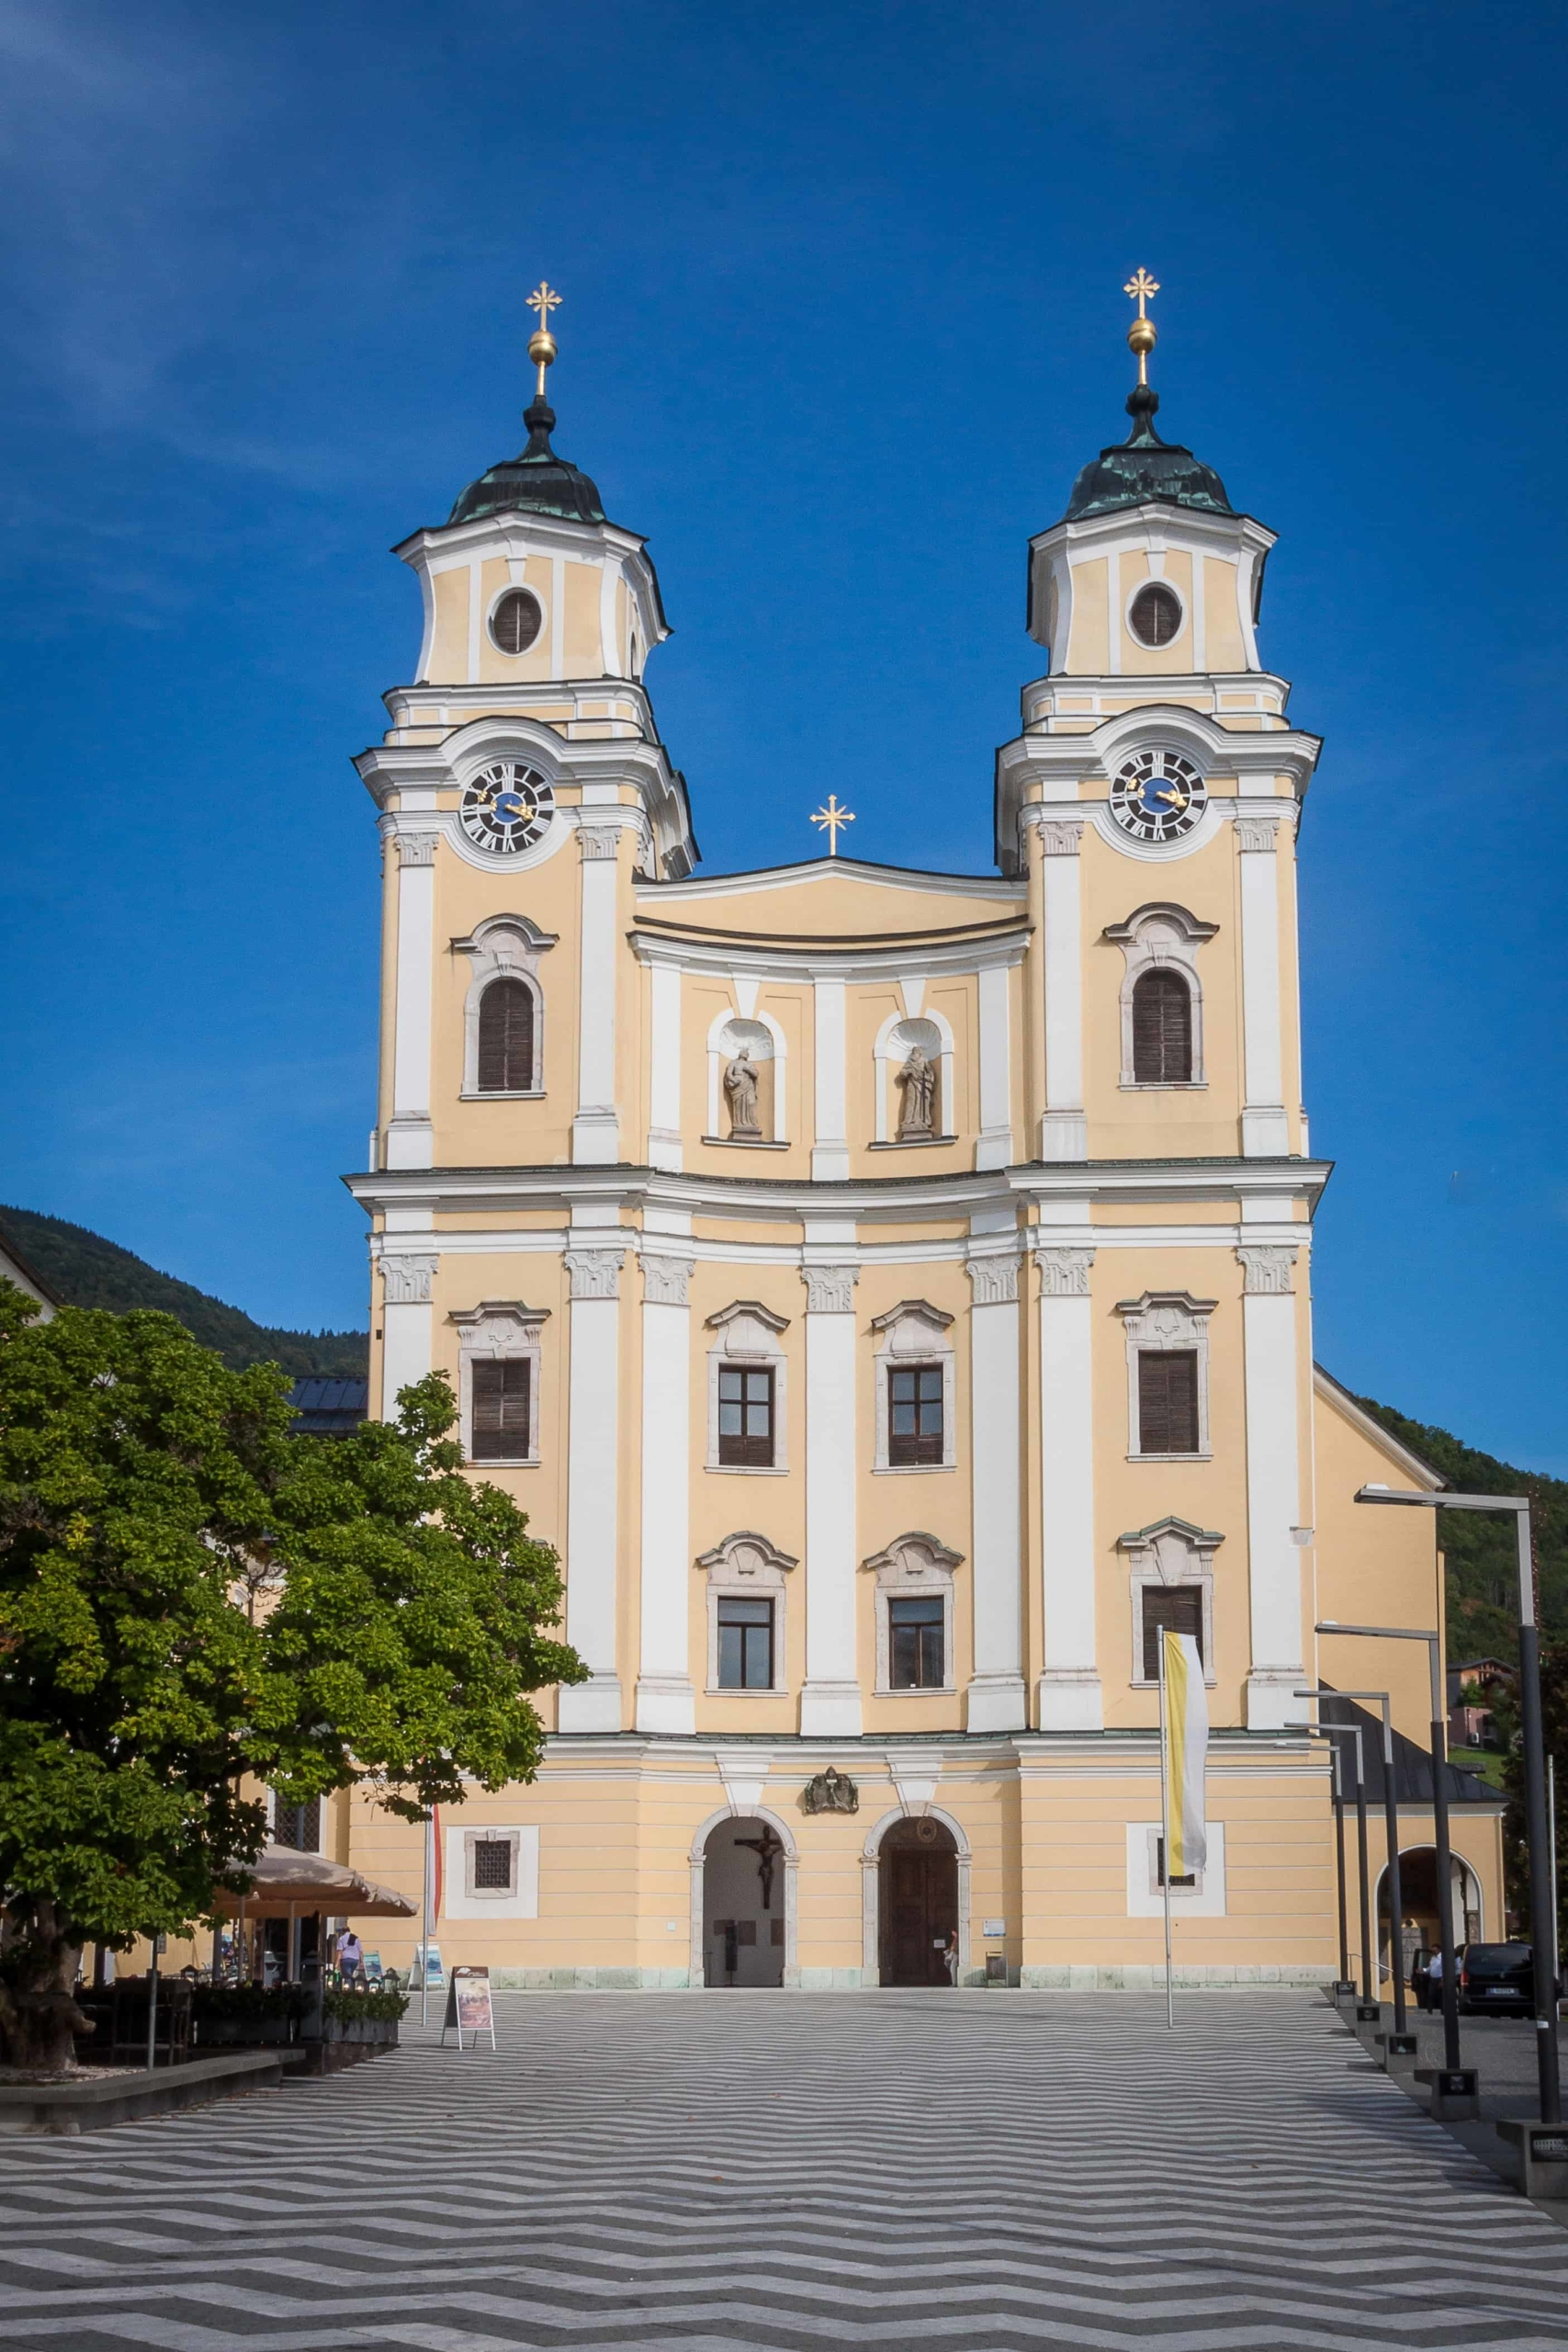 Image by Th G Mondsee